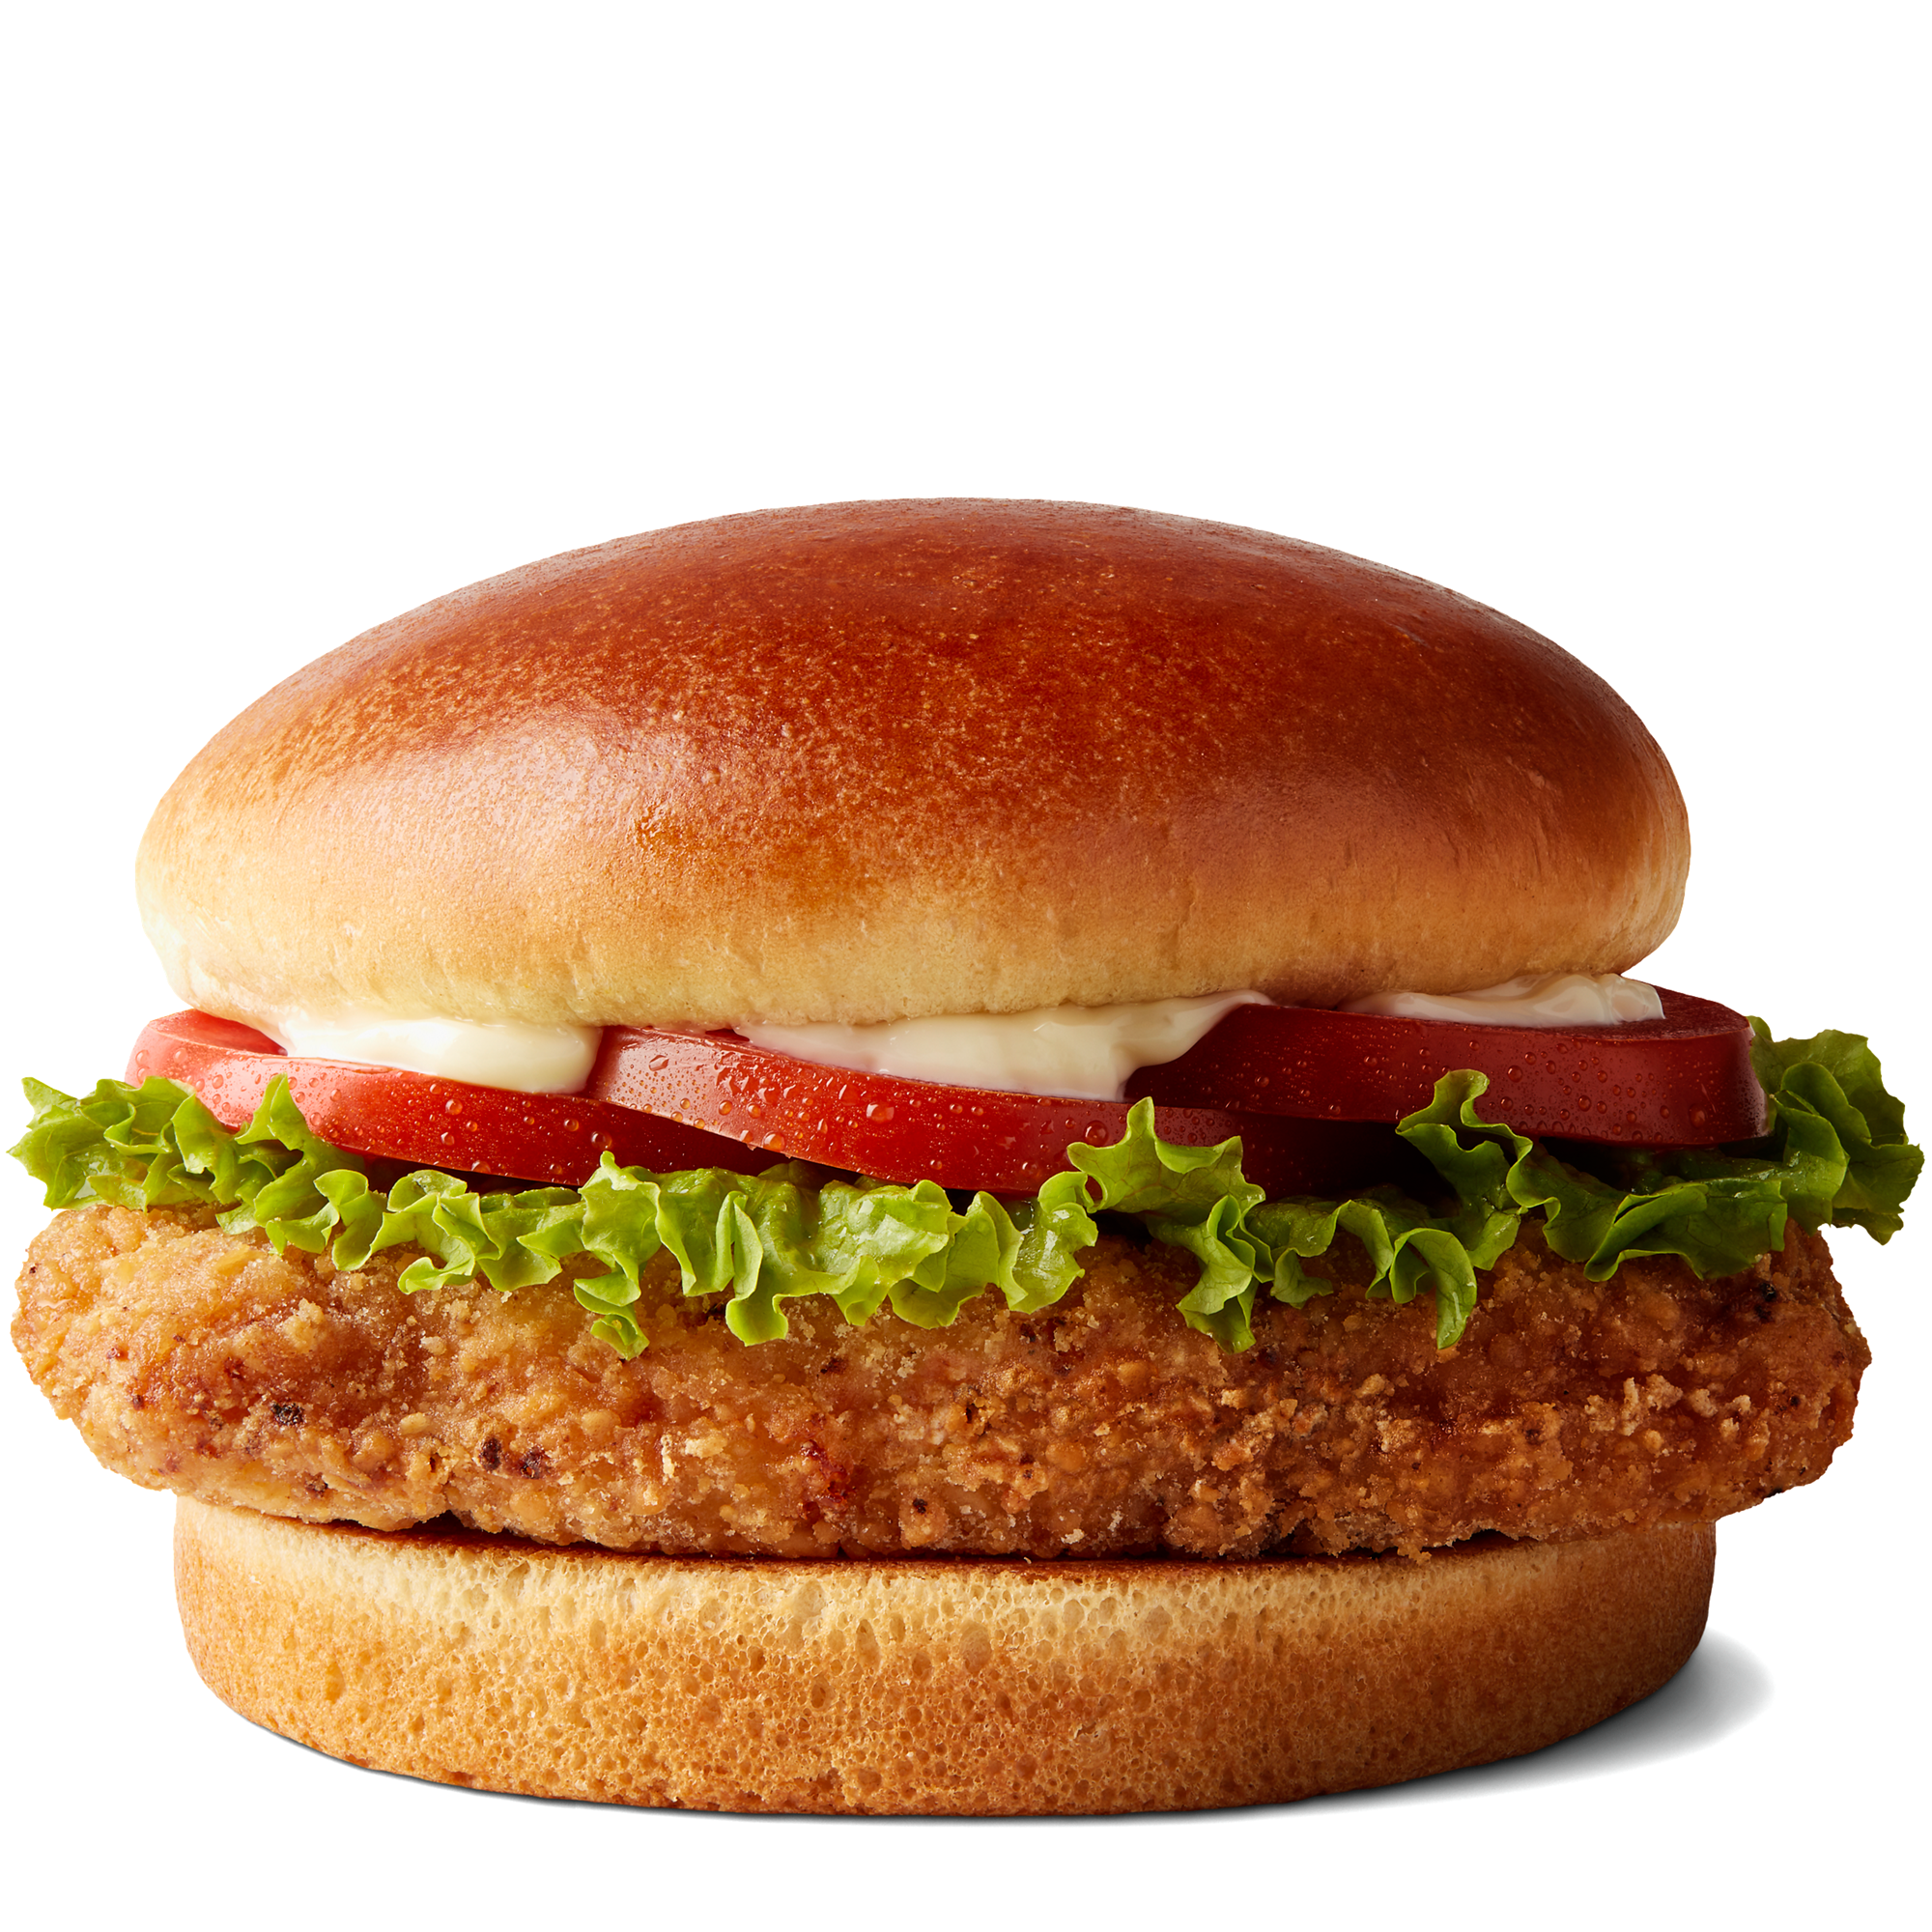 When it comes to McDonald's and bodybuilding- you can't go wrong with the Crispy Chicken Sandwich.  (https://corporate.mcdonalds.com/content/dam/gwscorp/assets/Media-Assets/Chicken-and-Fish/4774_ButtermilkCrispyChicken.uuid.png)